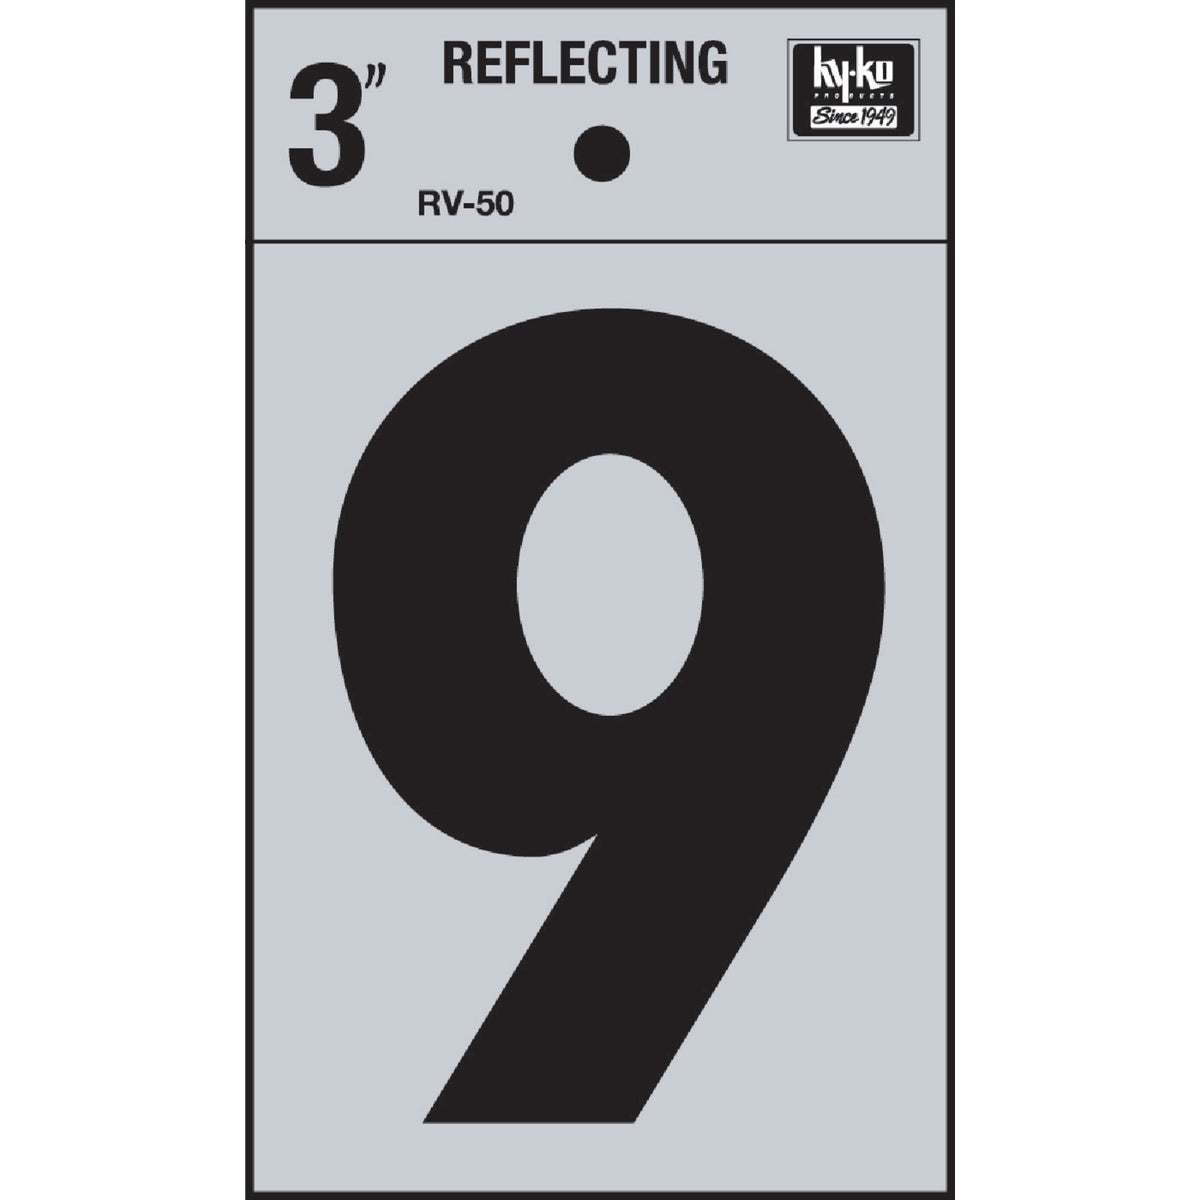 "3"" REFLECT NUMBER 9 - RV-50-9 by Hy Ko Prods Co"